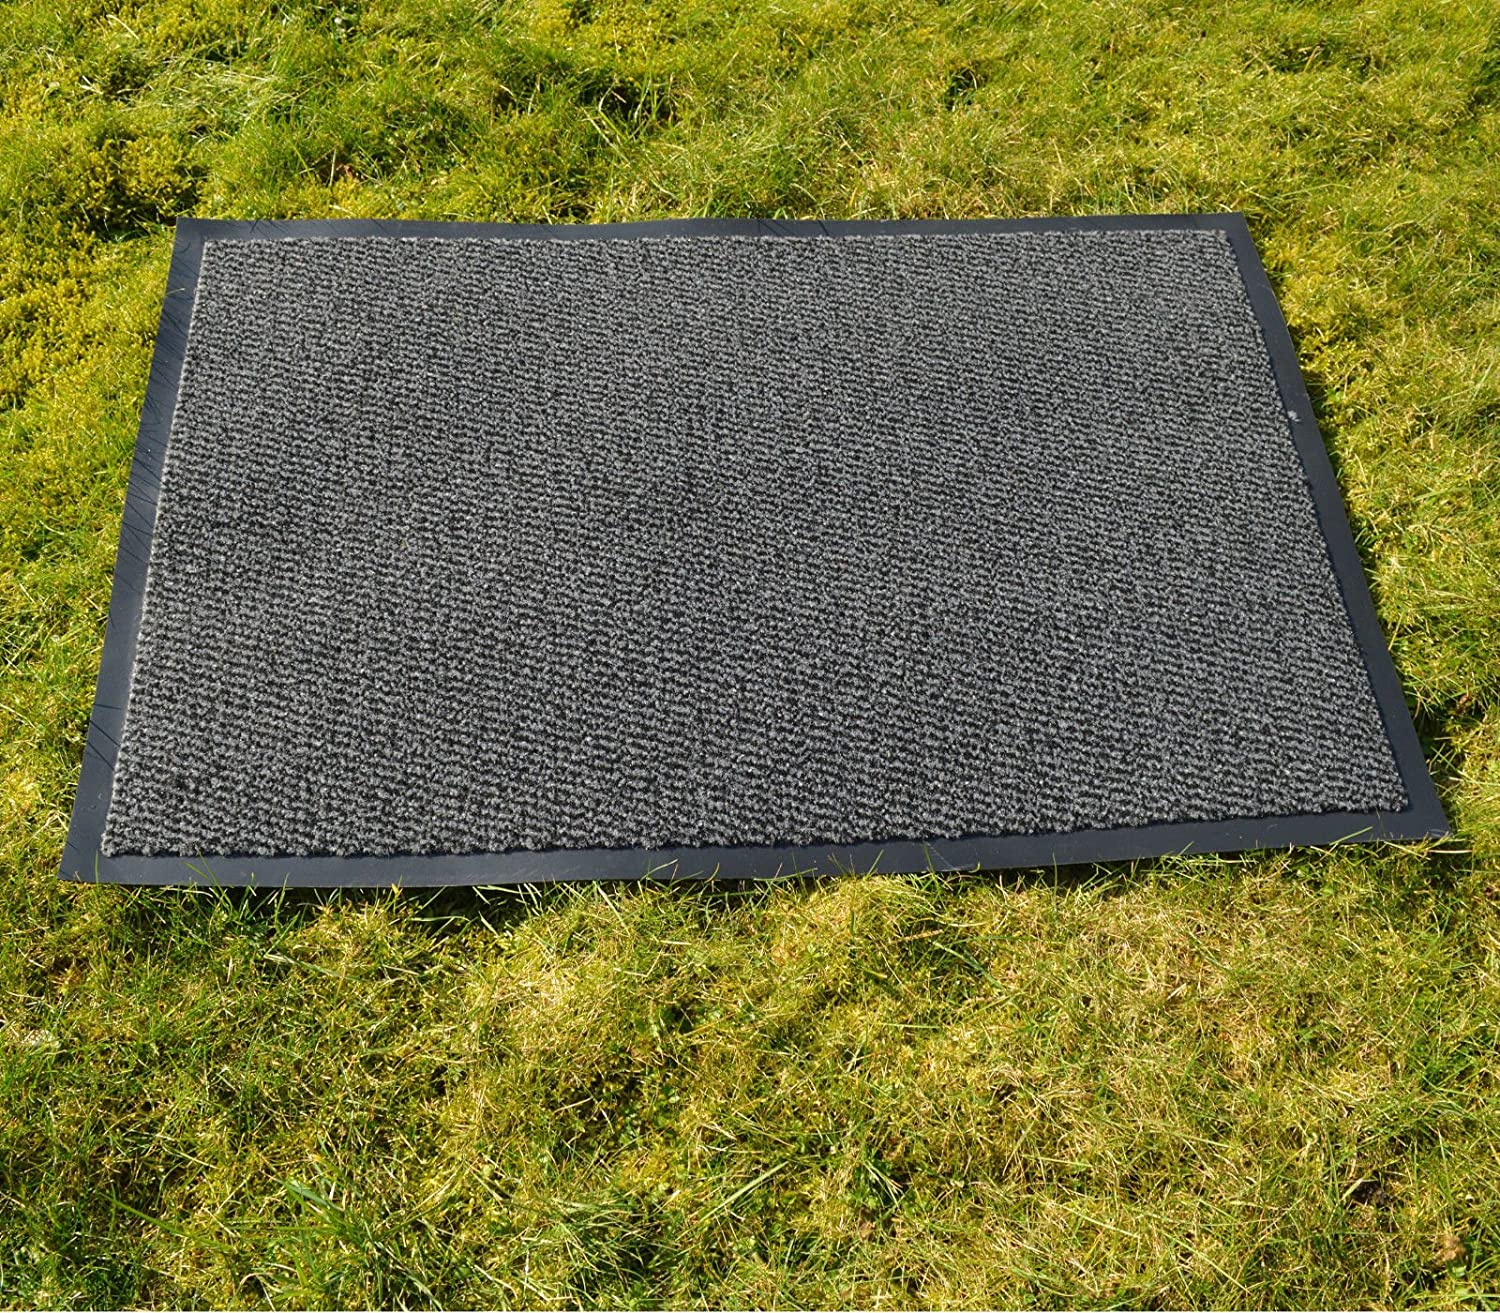 FB FunkyBuys® LARGE SMALL KITCHEN HEAVY DUTY BARRIER MAT NON SLIP RUBBER BACK DOOR HALL RUGS-AVAILABLE IN 4 COLORS AND VARIOUS SIZES (40x60 cm, Anthracite/Black)